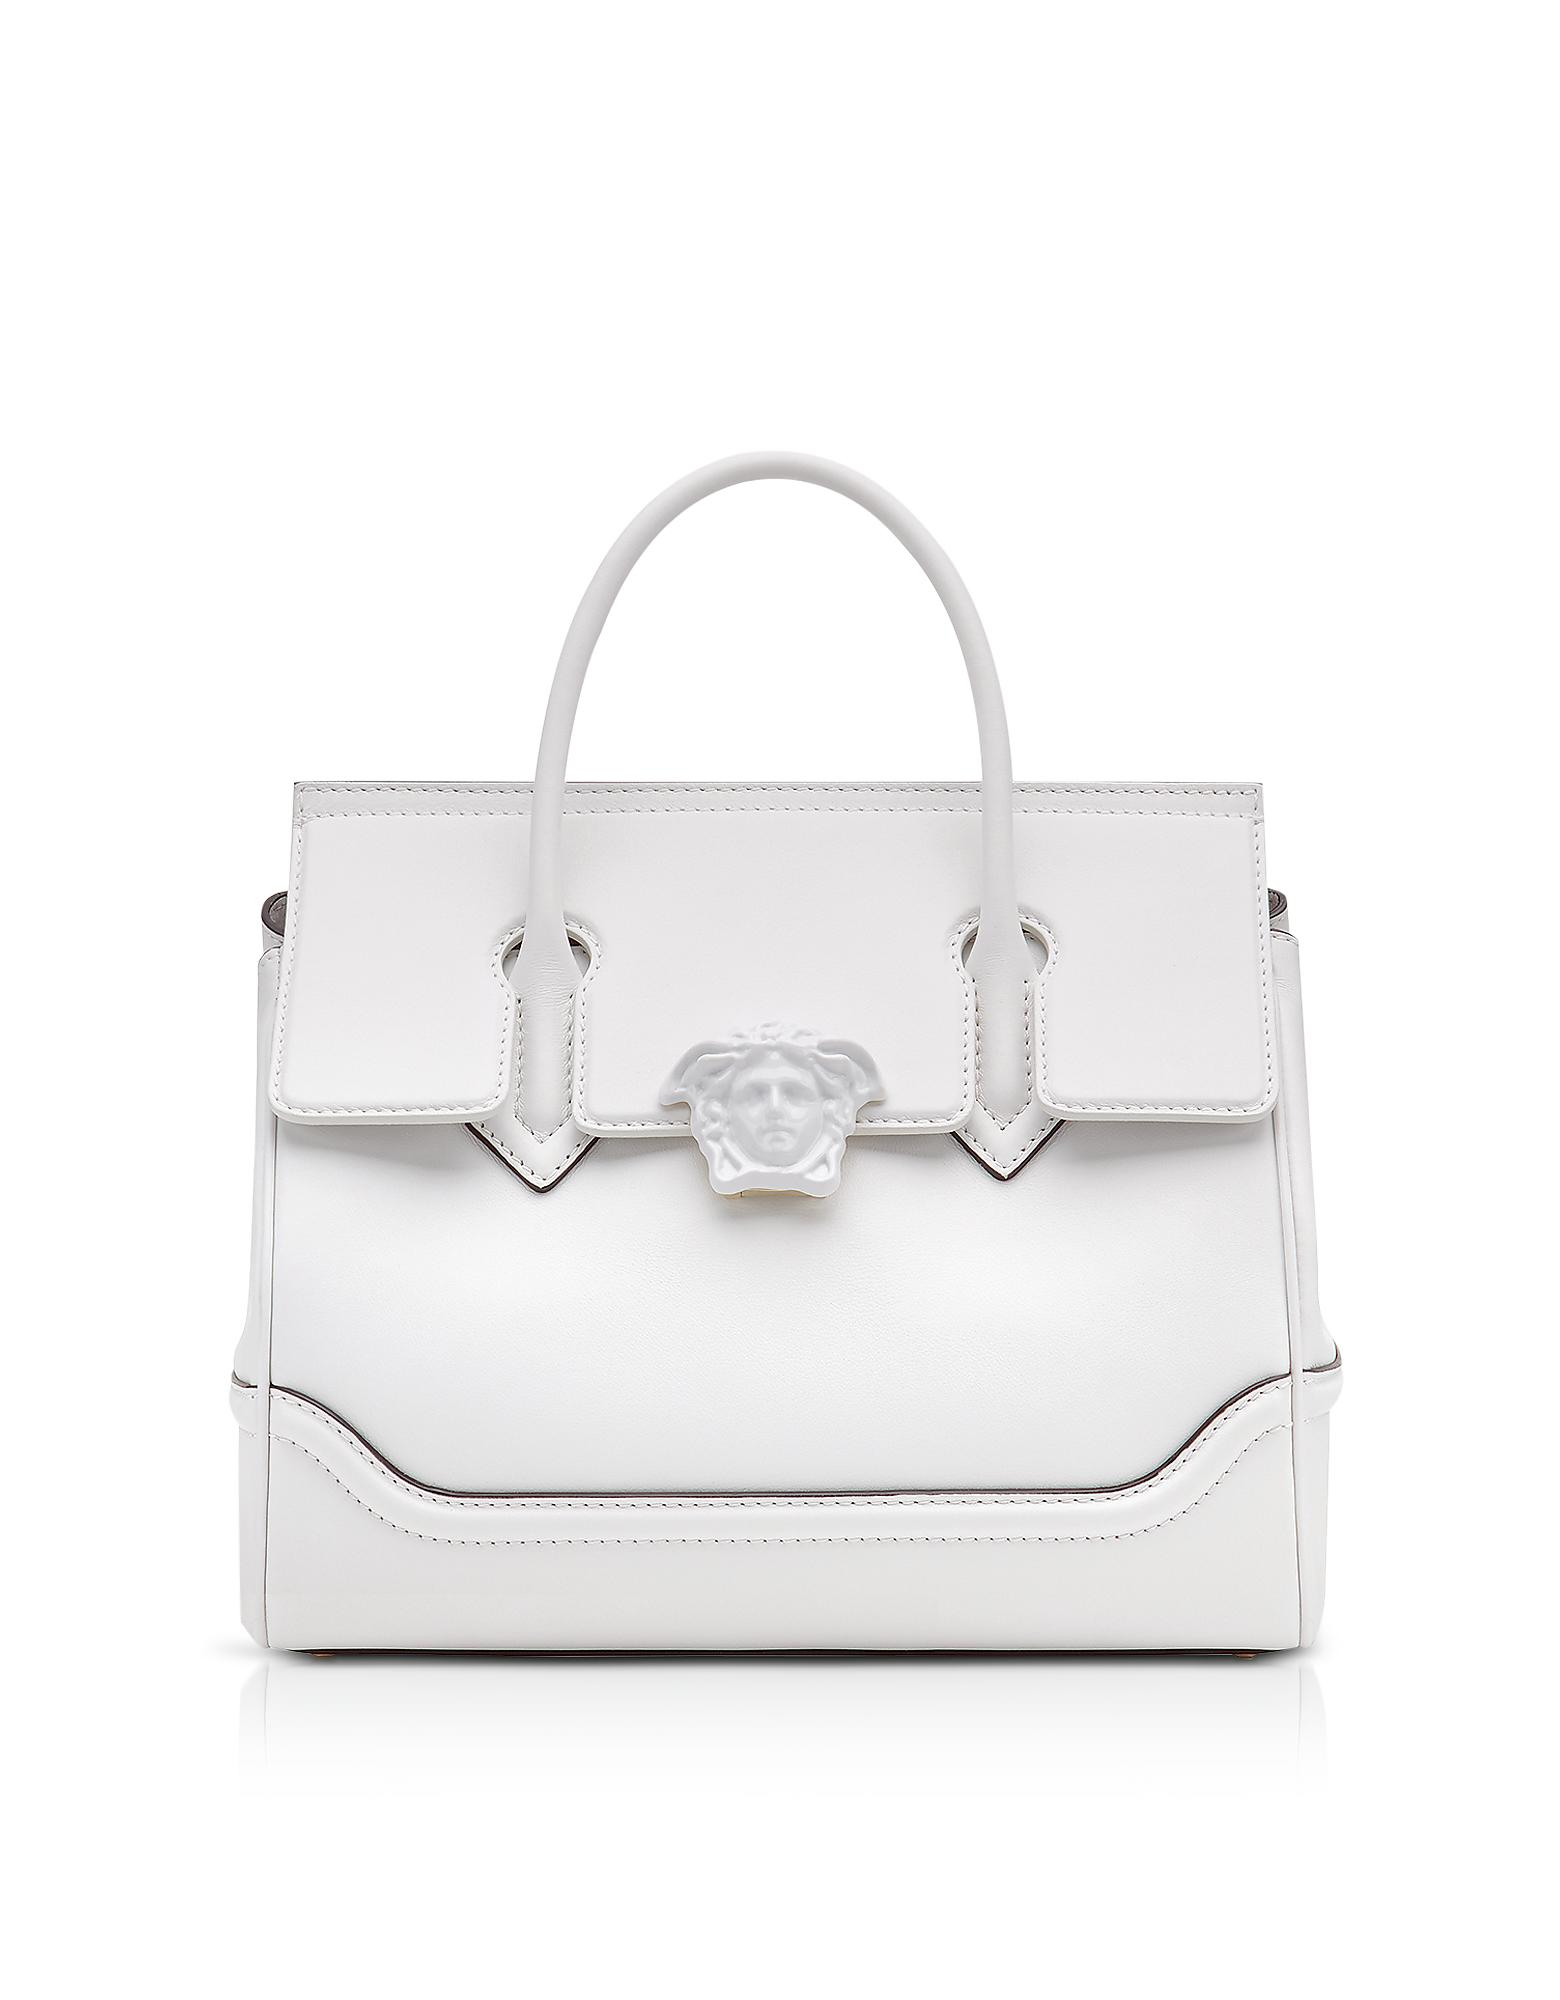 9b29644478ff Versace Palazzo Empire Large Top Handle Bag in White - Lyst